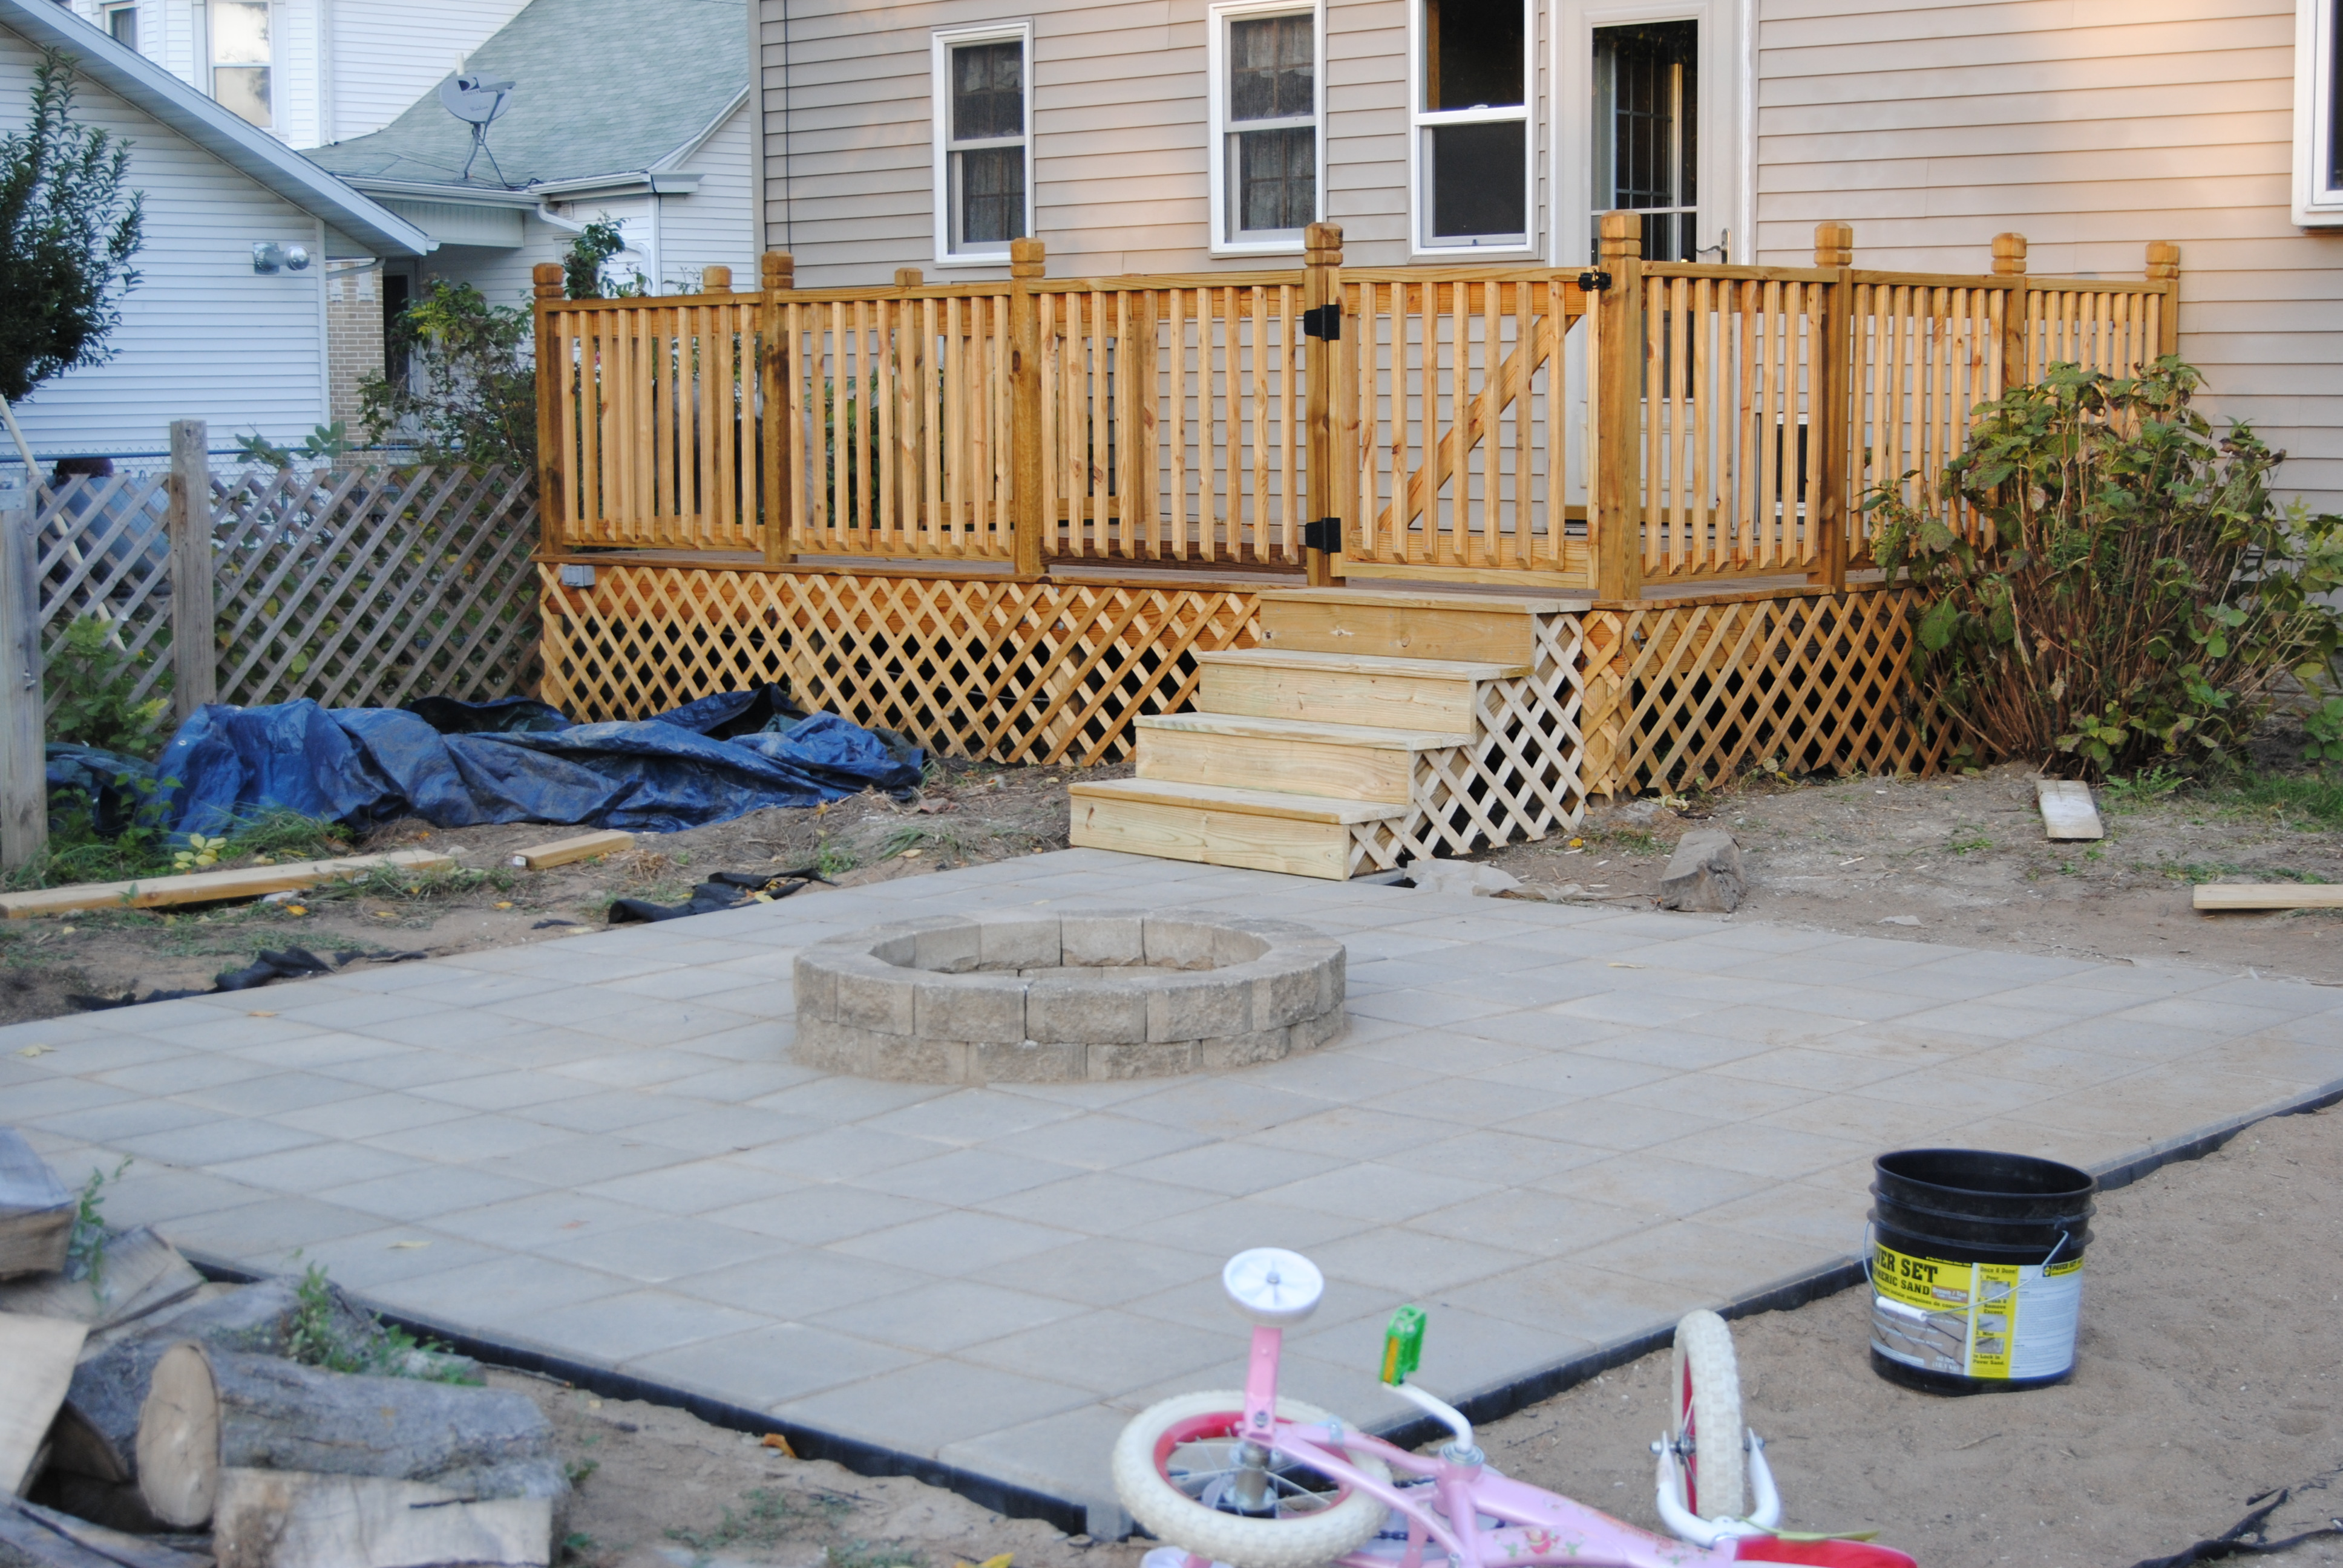 Our Rebuilt Deck Leading Down To Our New Patio. The Fire Pit Is Lonely No